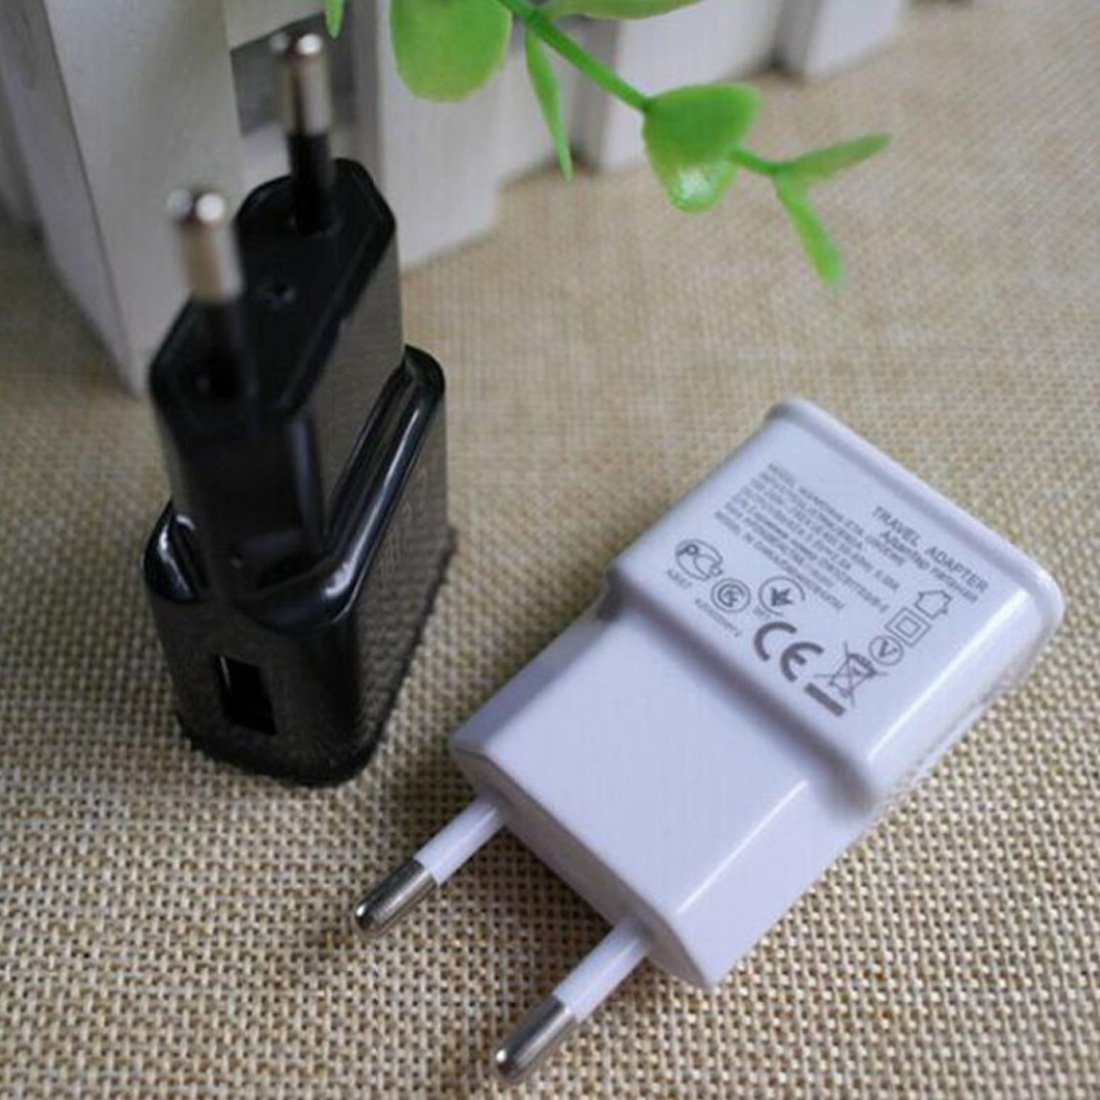 New 1Pc EU/US Plug Desktop Wall Charger Adapter Mobile Phone